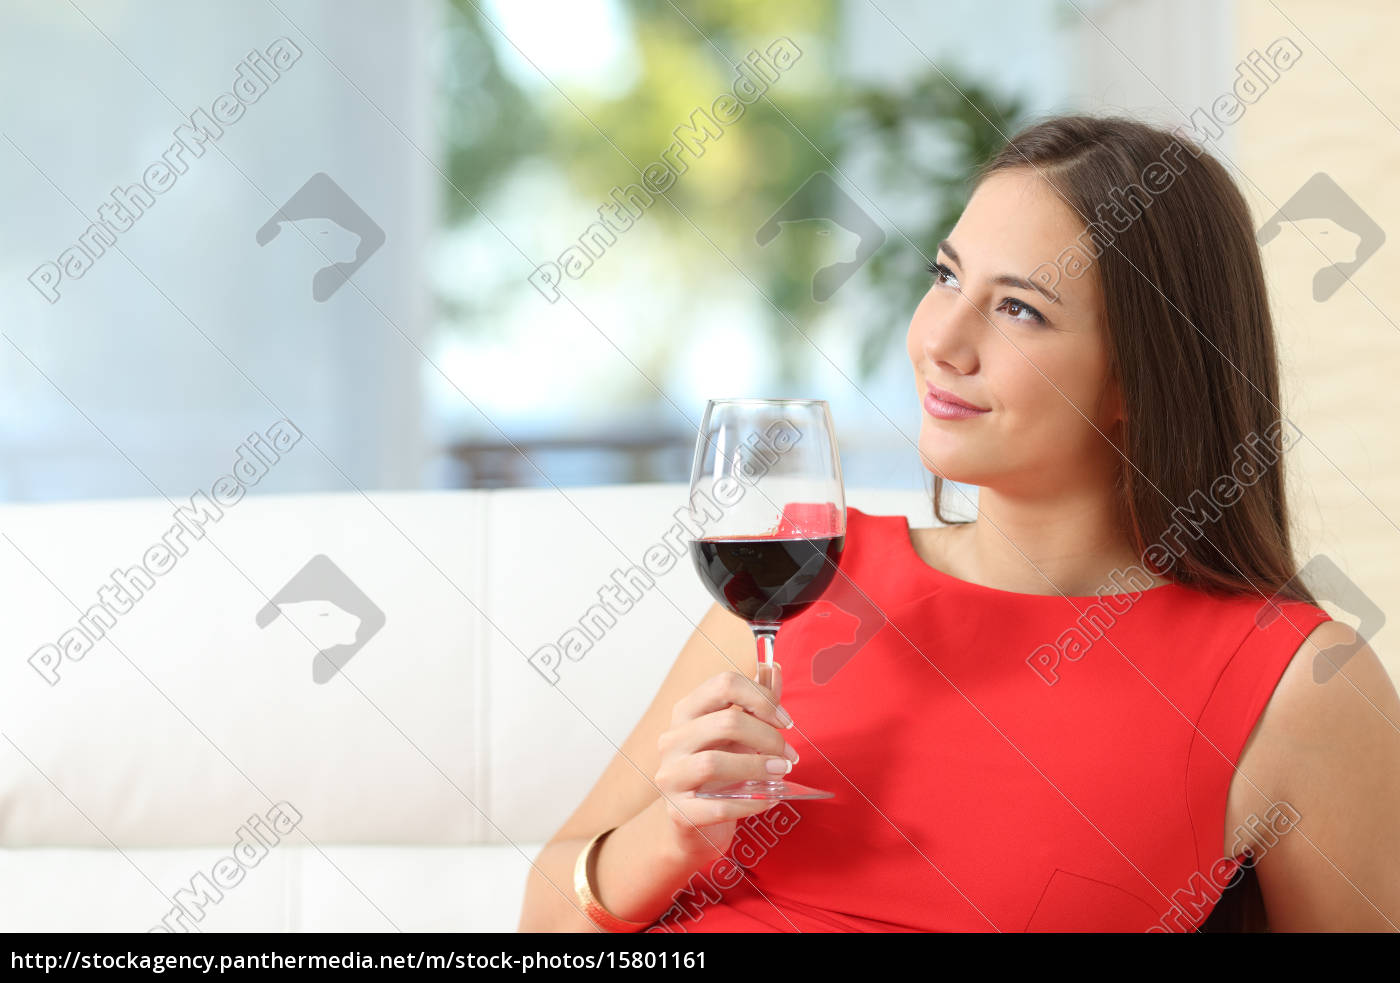 pensive, relaxed, woman, with, a, cup - 15801161